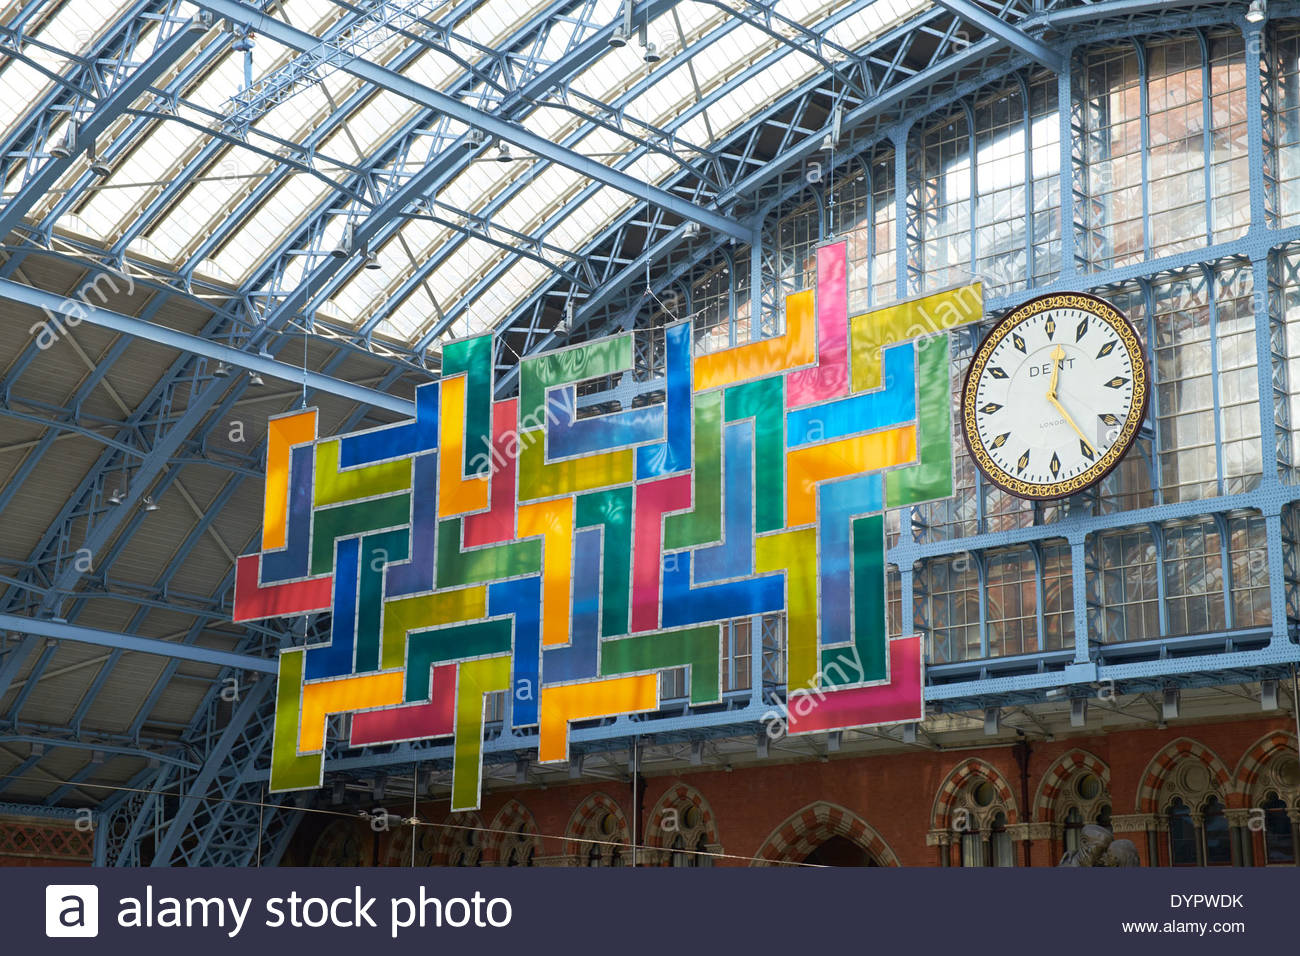 Chromolocomotion by David Batchelor and Dent clock St Pancras International Railway Station - Stock Image